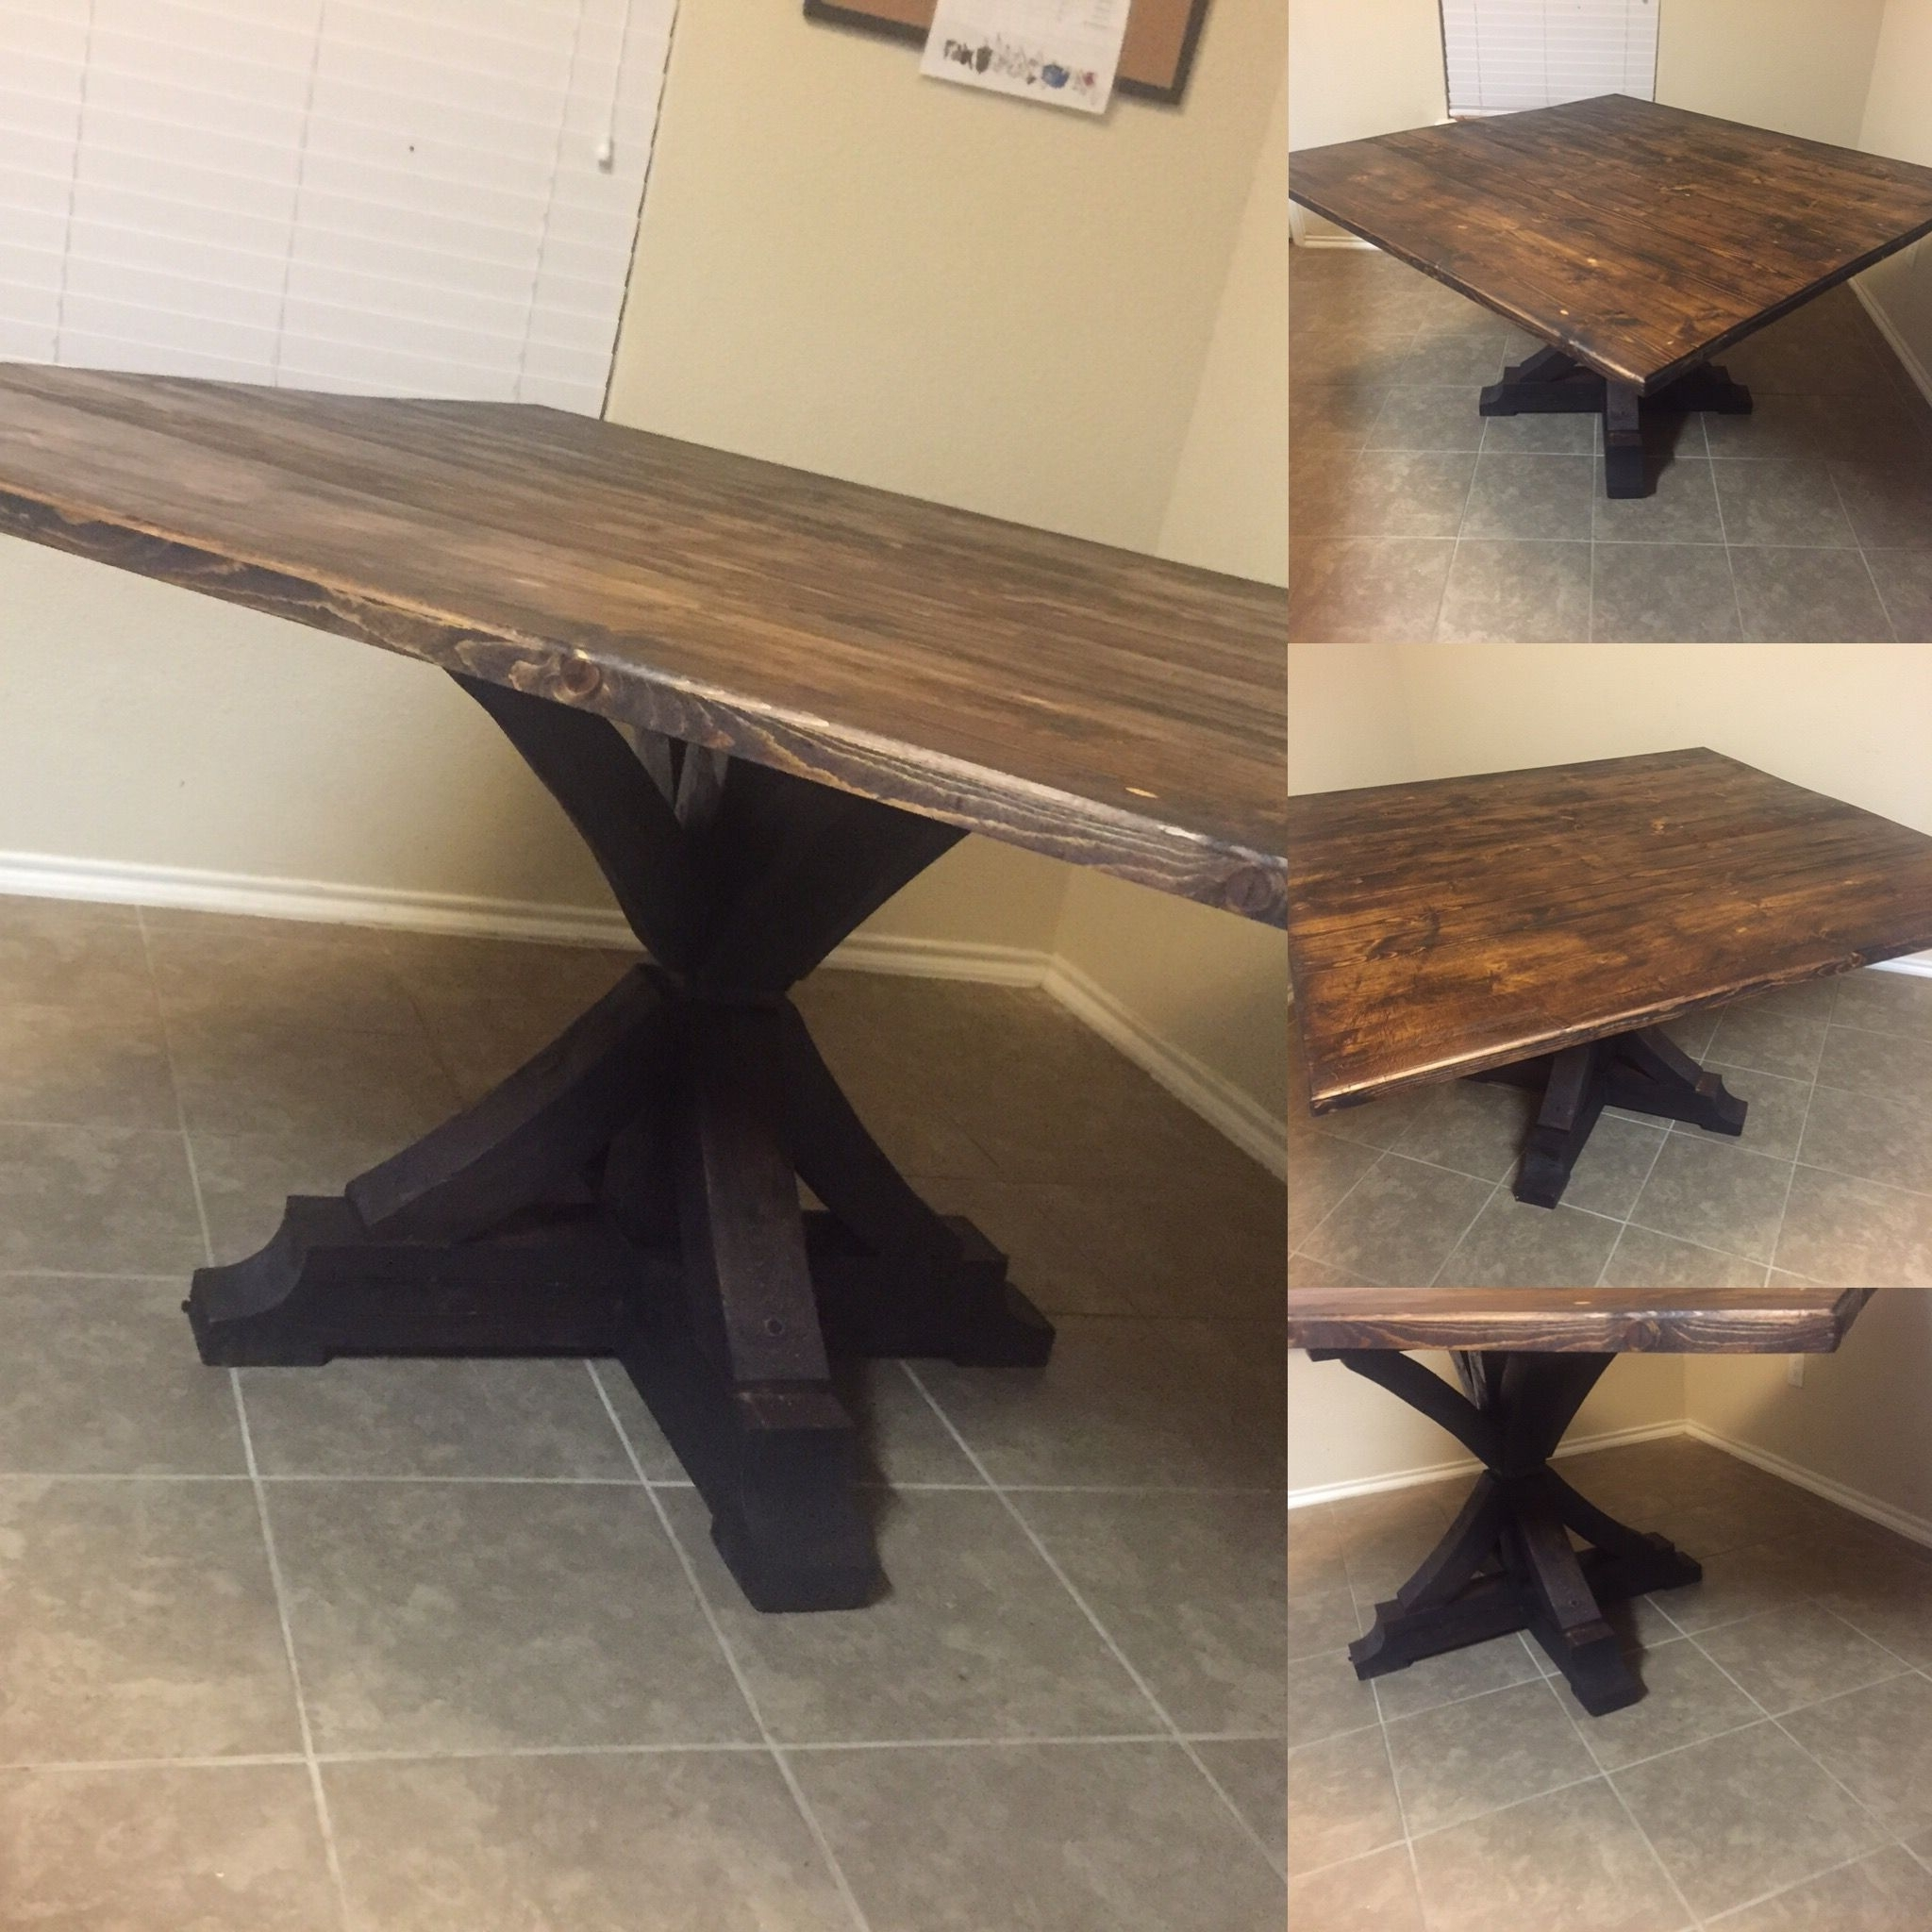 Most Recently Released Square Dining Tables Inside Custom Rustic Square Dining Tabledallas Rustic (View 14 of 25)